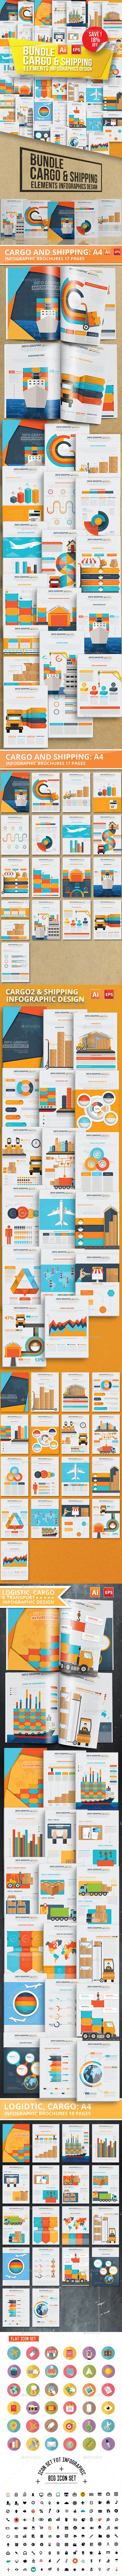 Bundle Cargo, Shipping & Logistic Infographics Design Templates Vector EPS, AI. Download here: http://graphicriver.net/item/bundle-cargo-shipping-logistic-infographics-design/14426131?ref=ksioks